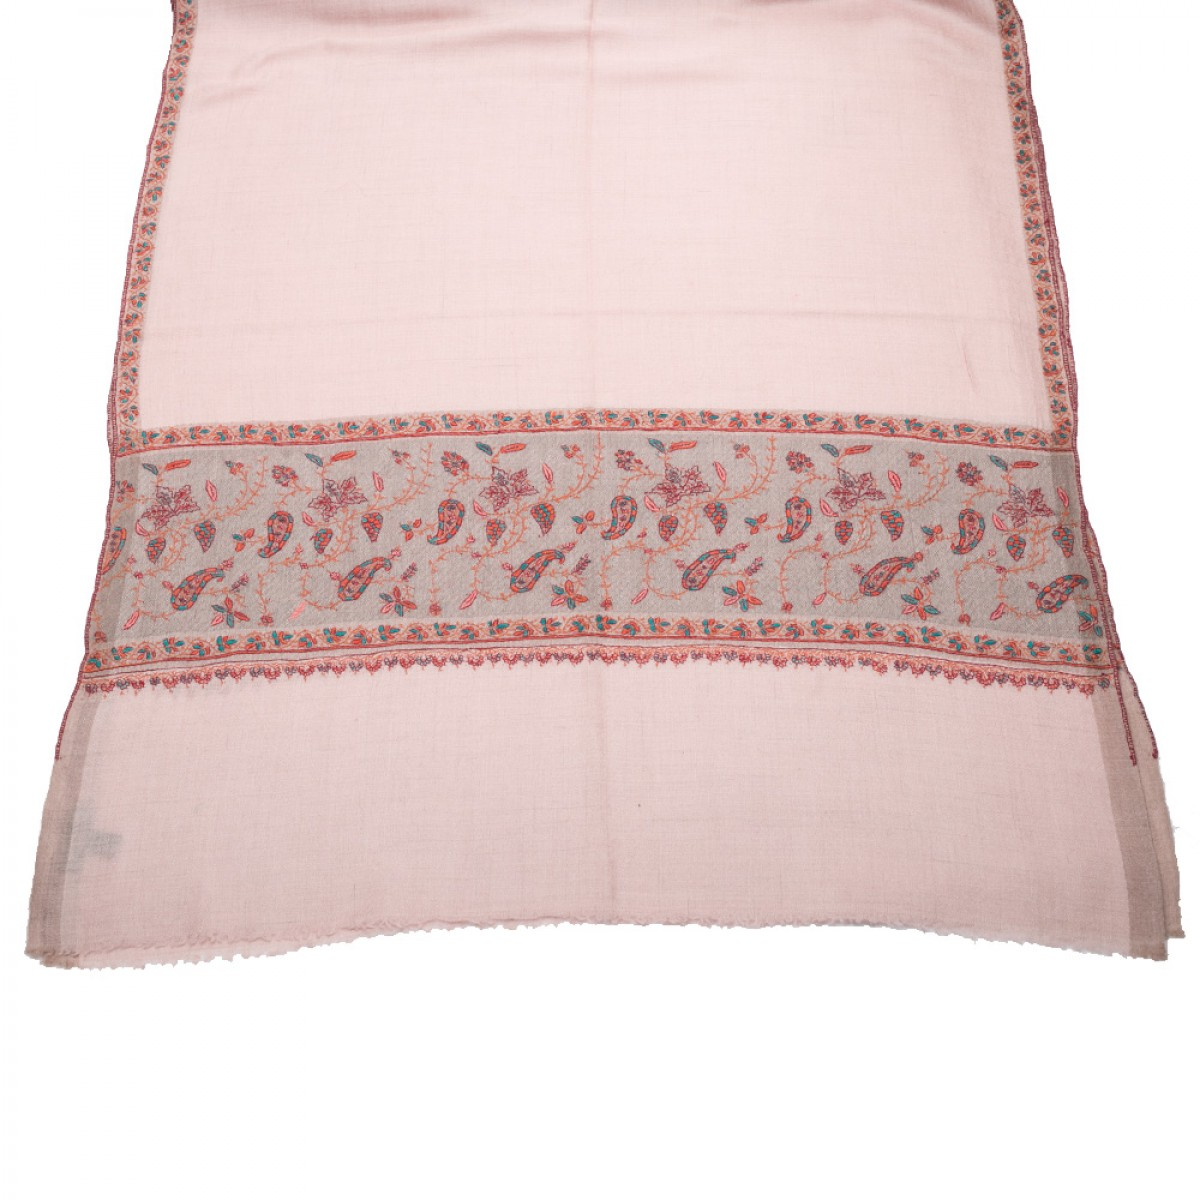 Hand Embroidered Cashmere Pashmina Stole - Light Pink